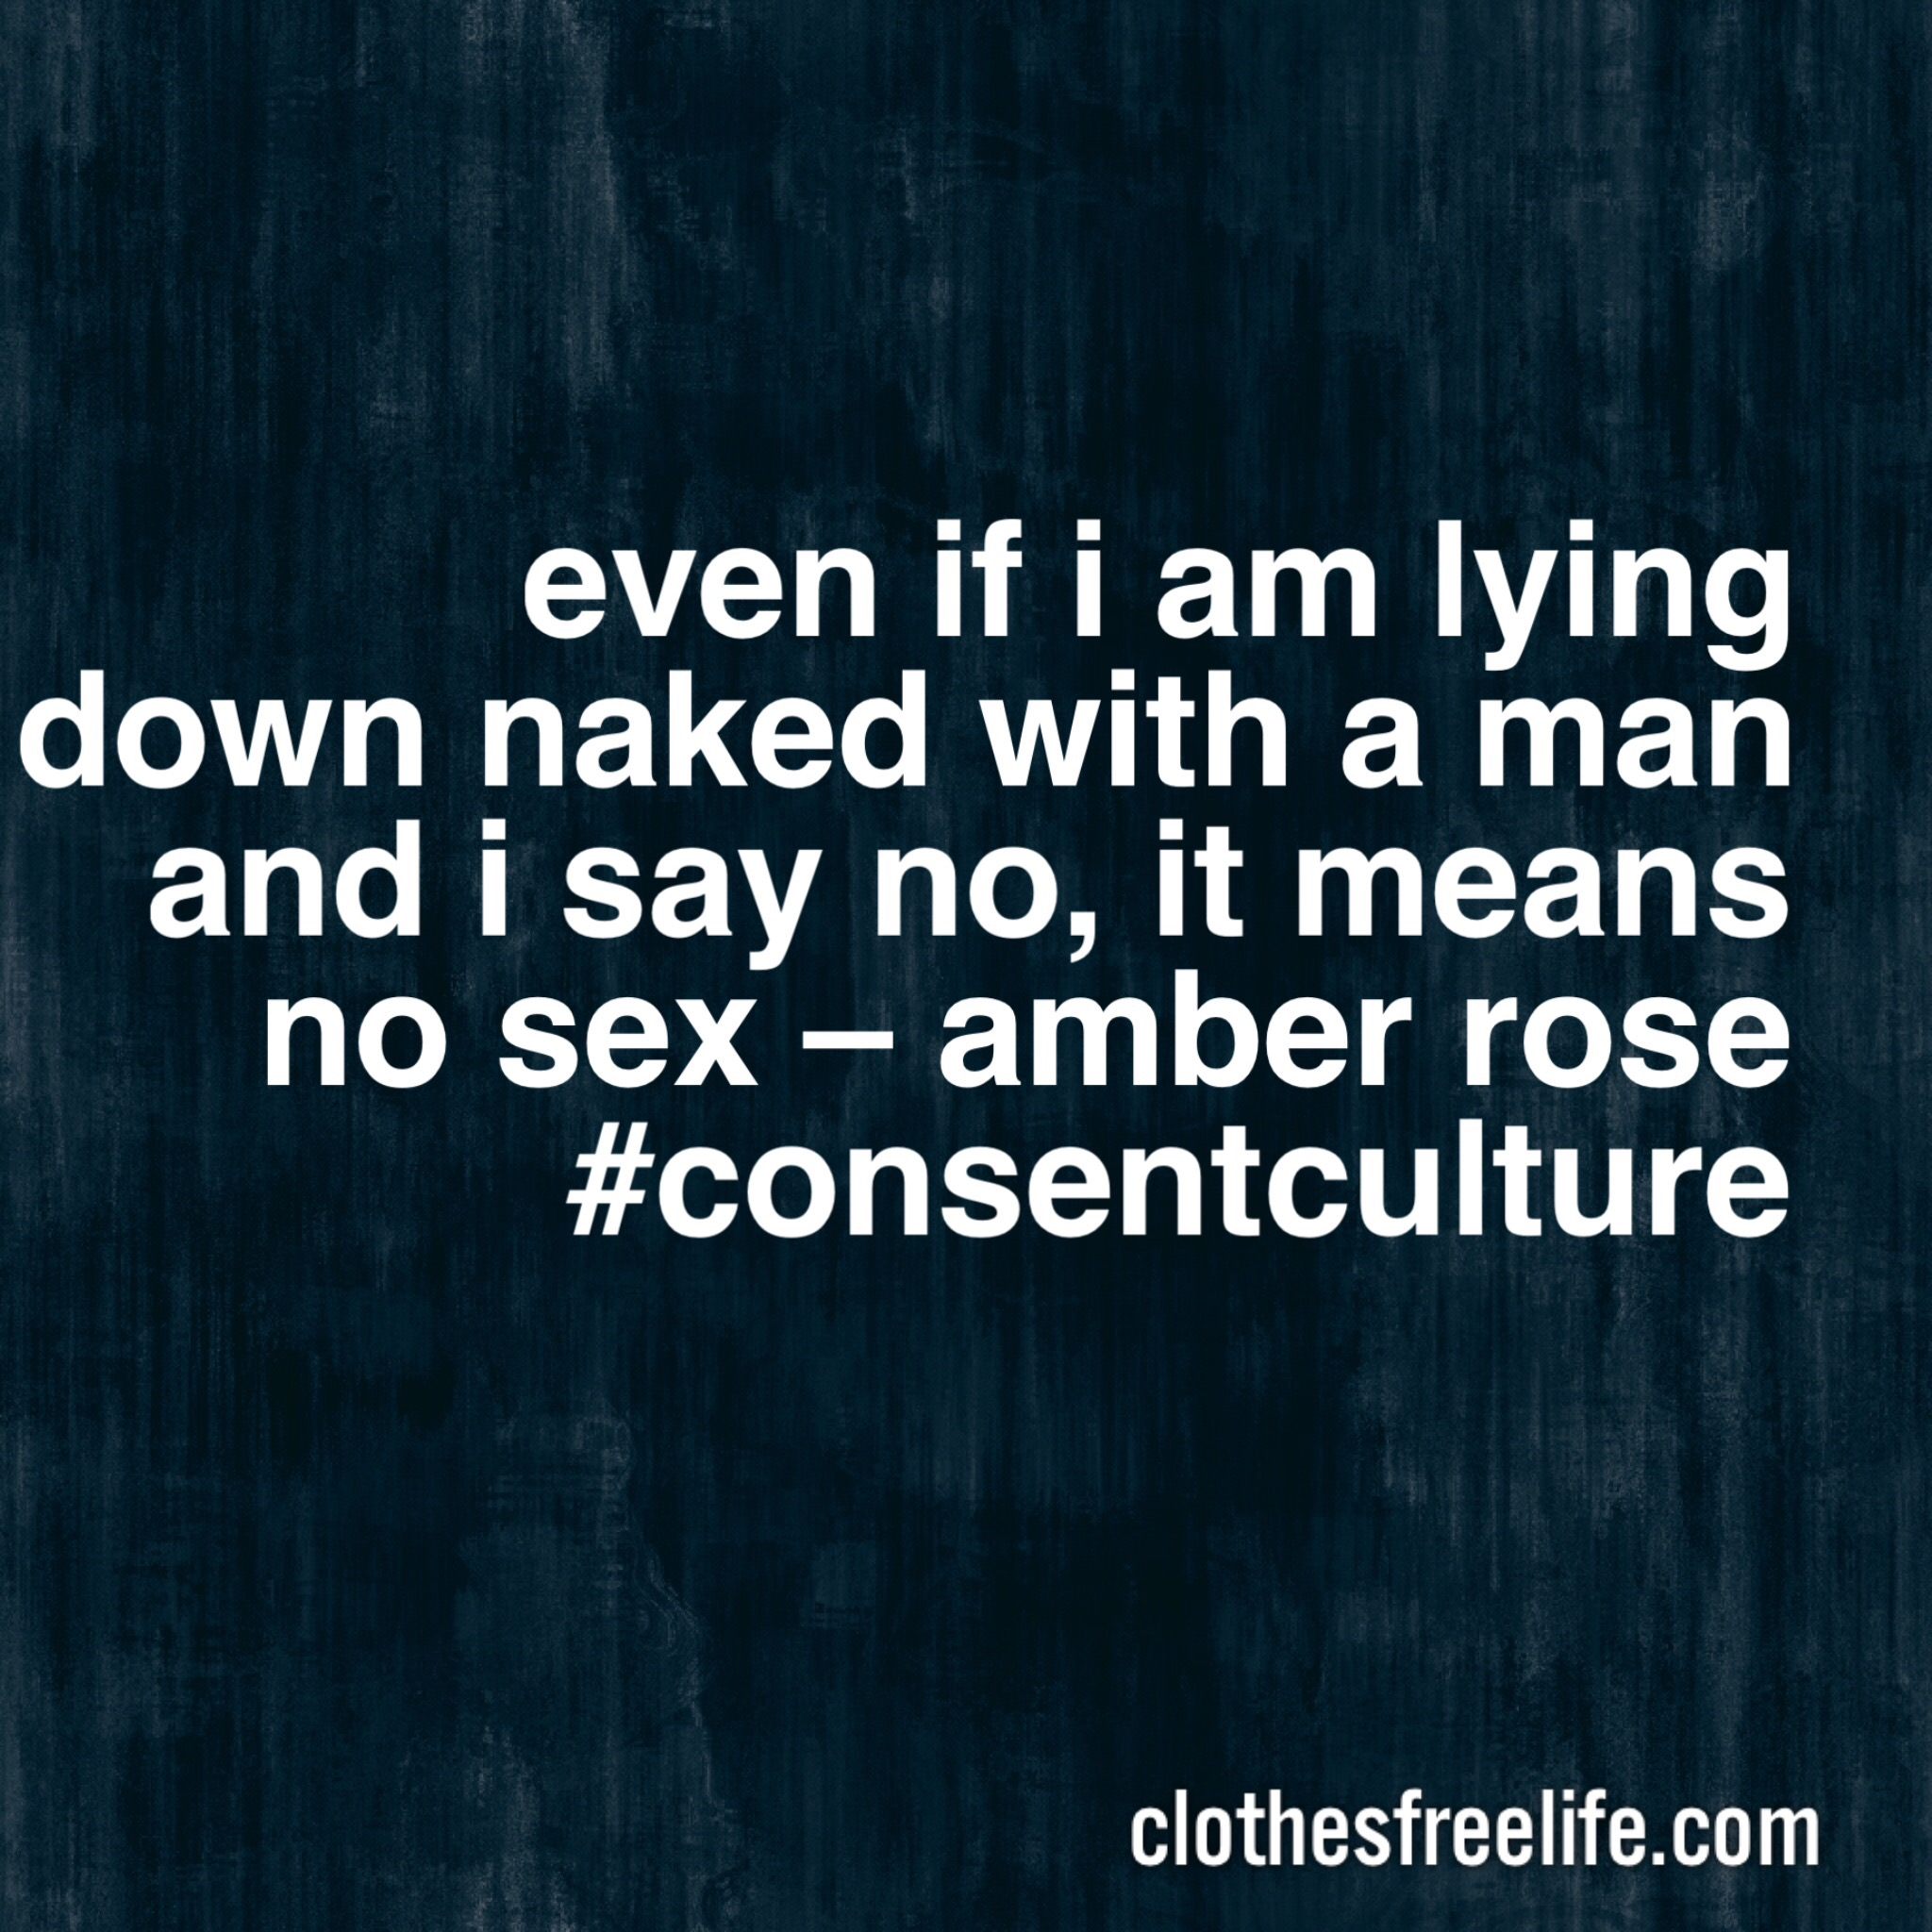 Creating a consent culture